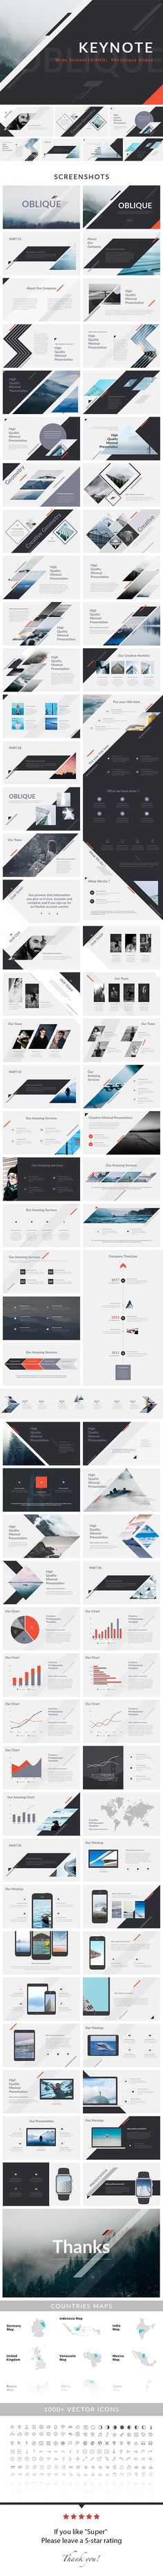 Oblique - Keynote Presentation Template